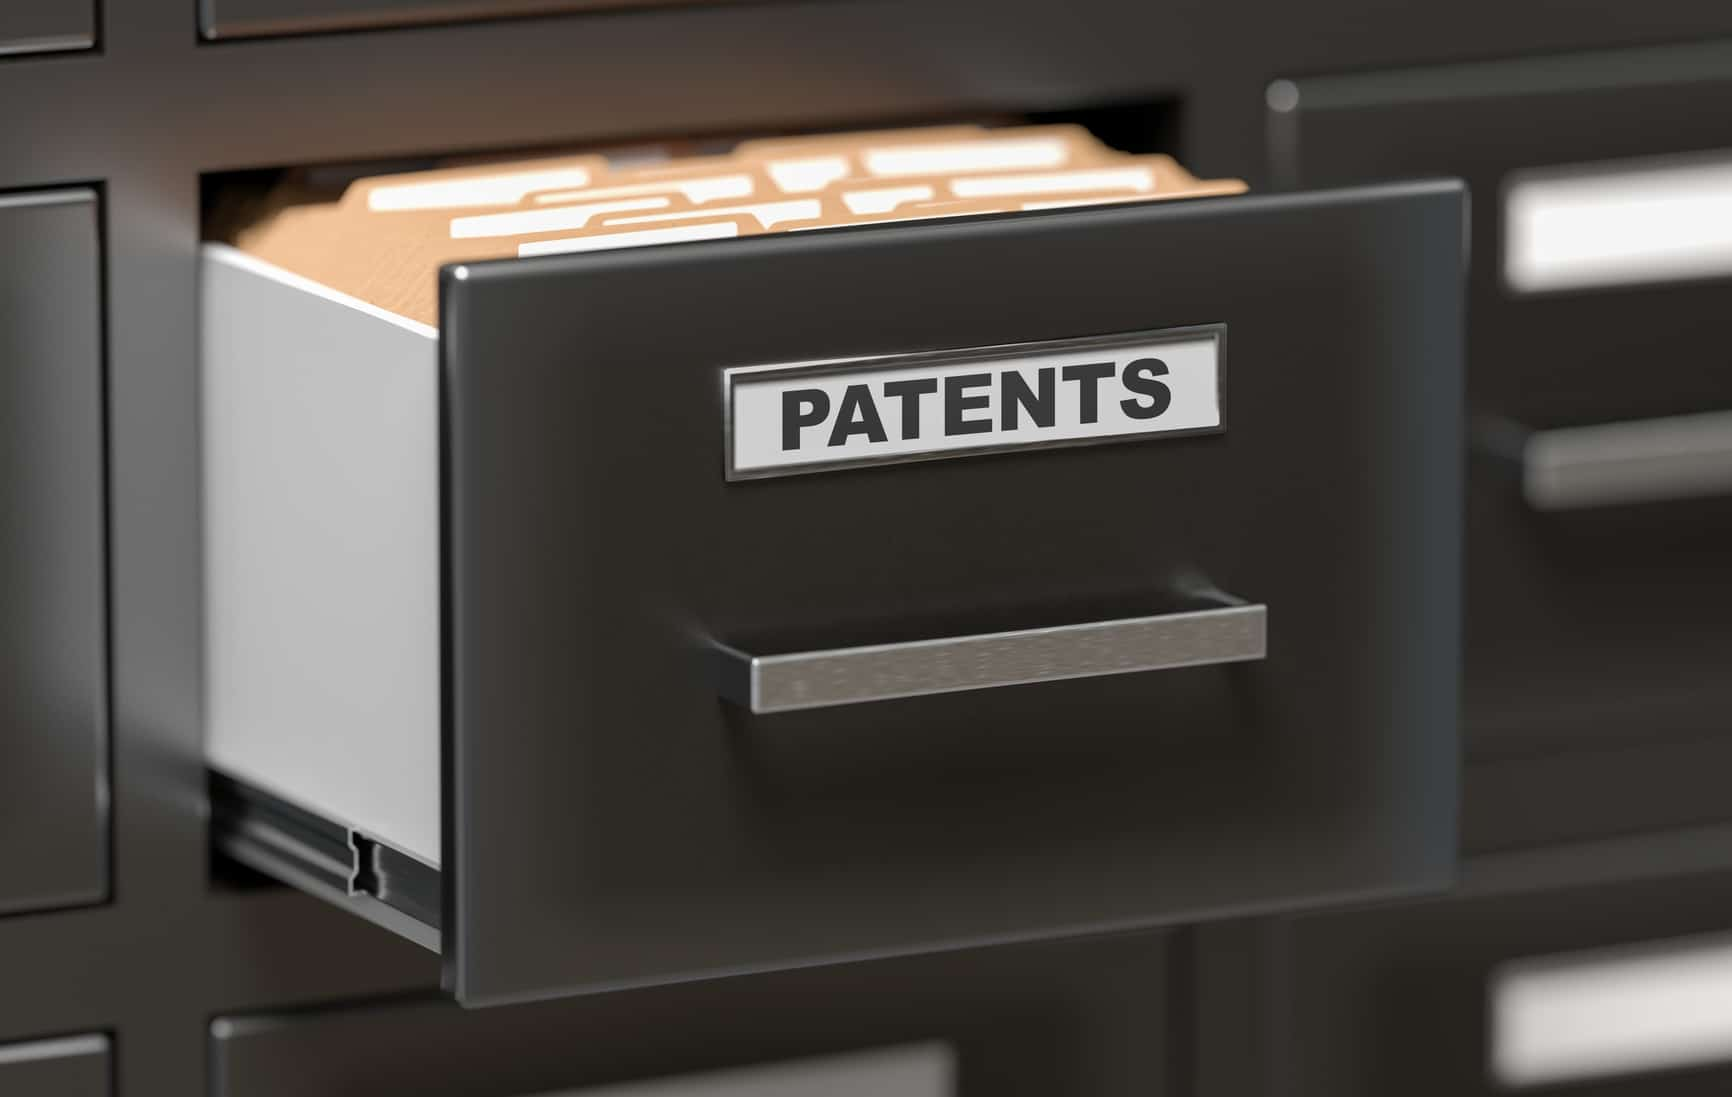 Patent files and documents in cabinet in office. 3D rendered illustration.